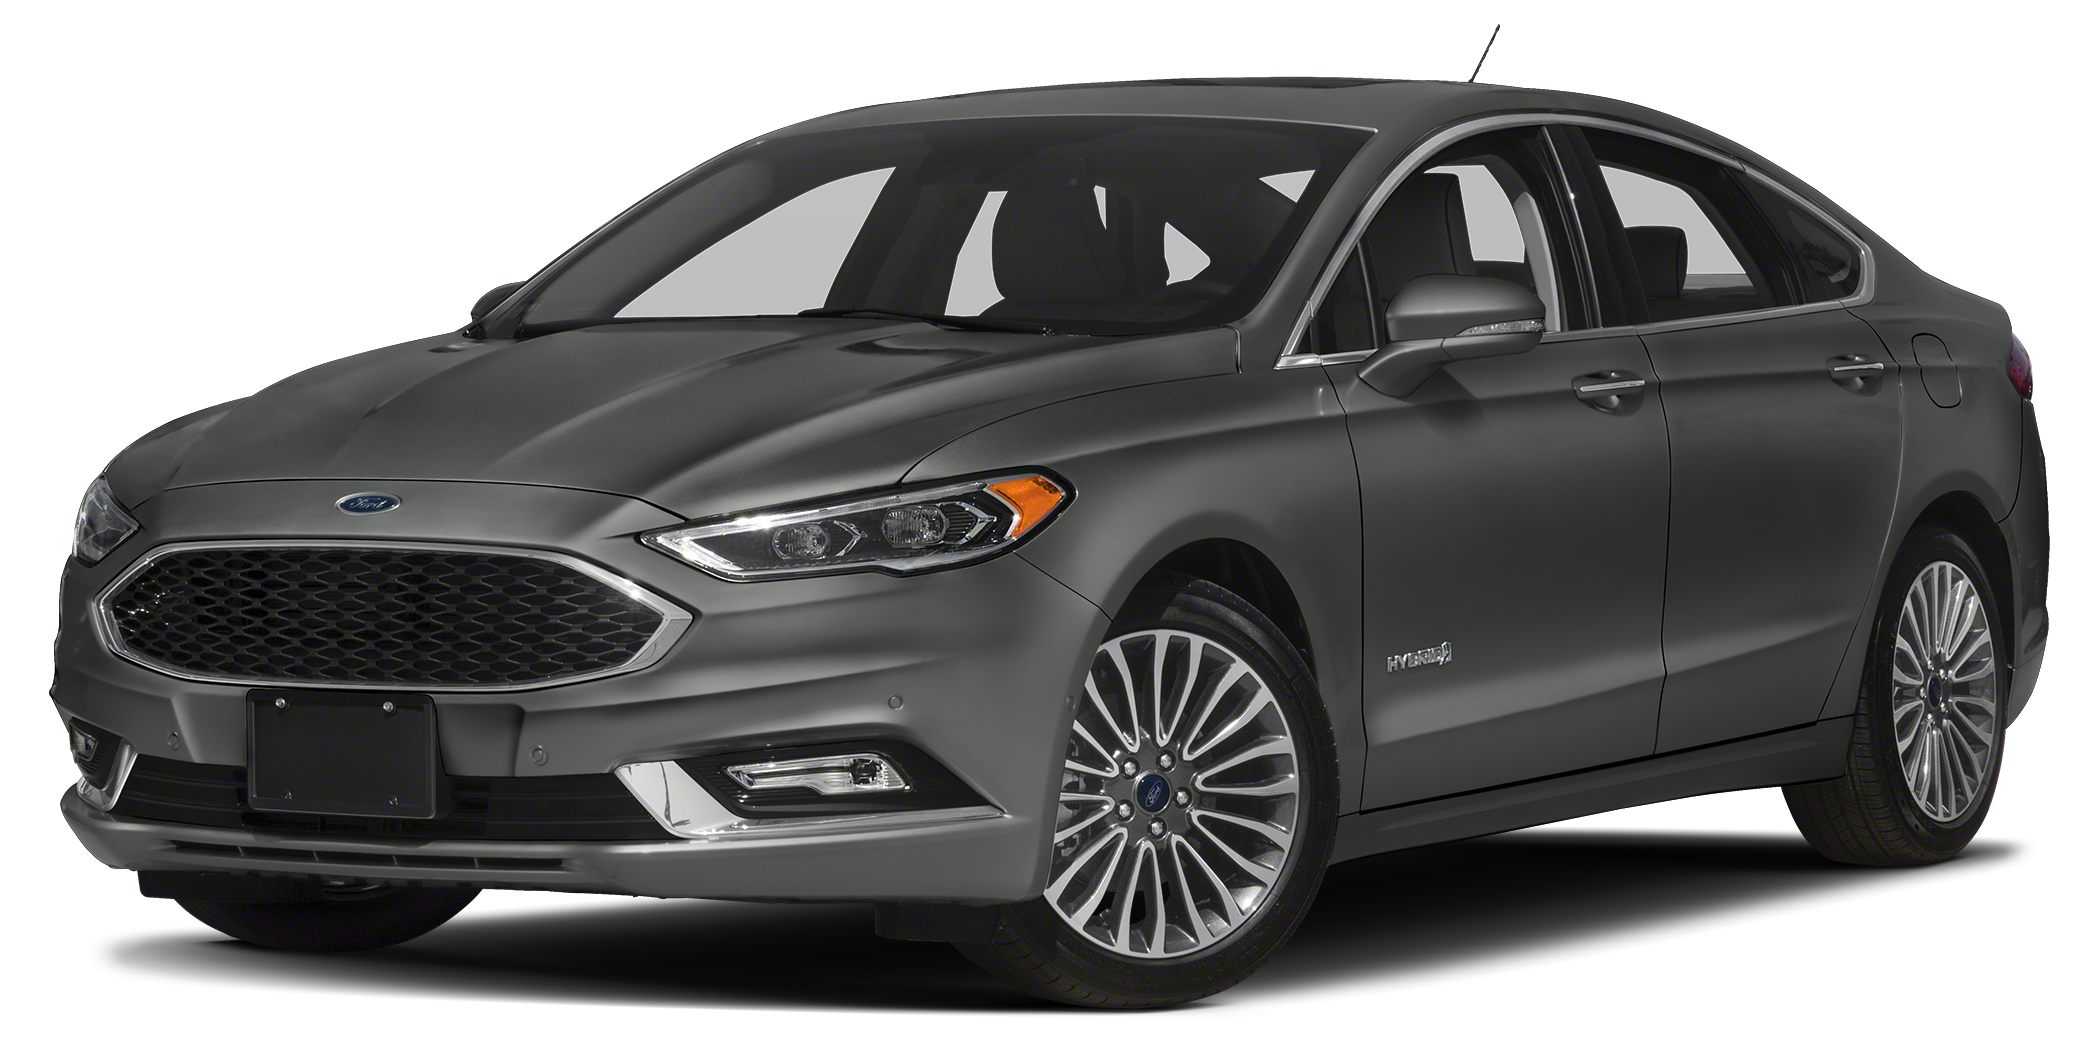 2017 Ford Fusion Hybrid Platinum KEY FACTORY FEATURES 2017 PLATINUM HYBRID MODEL WITH ALL THE TO